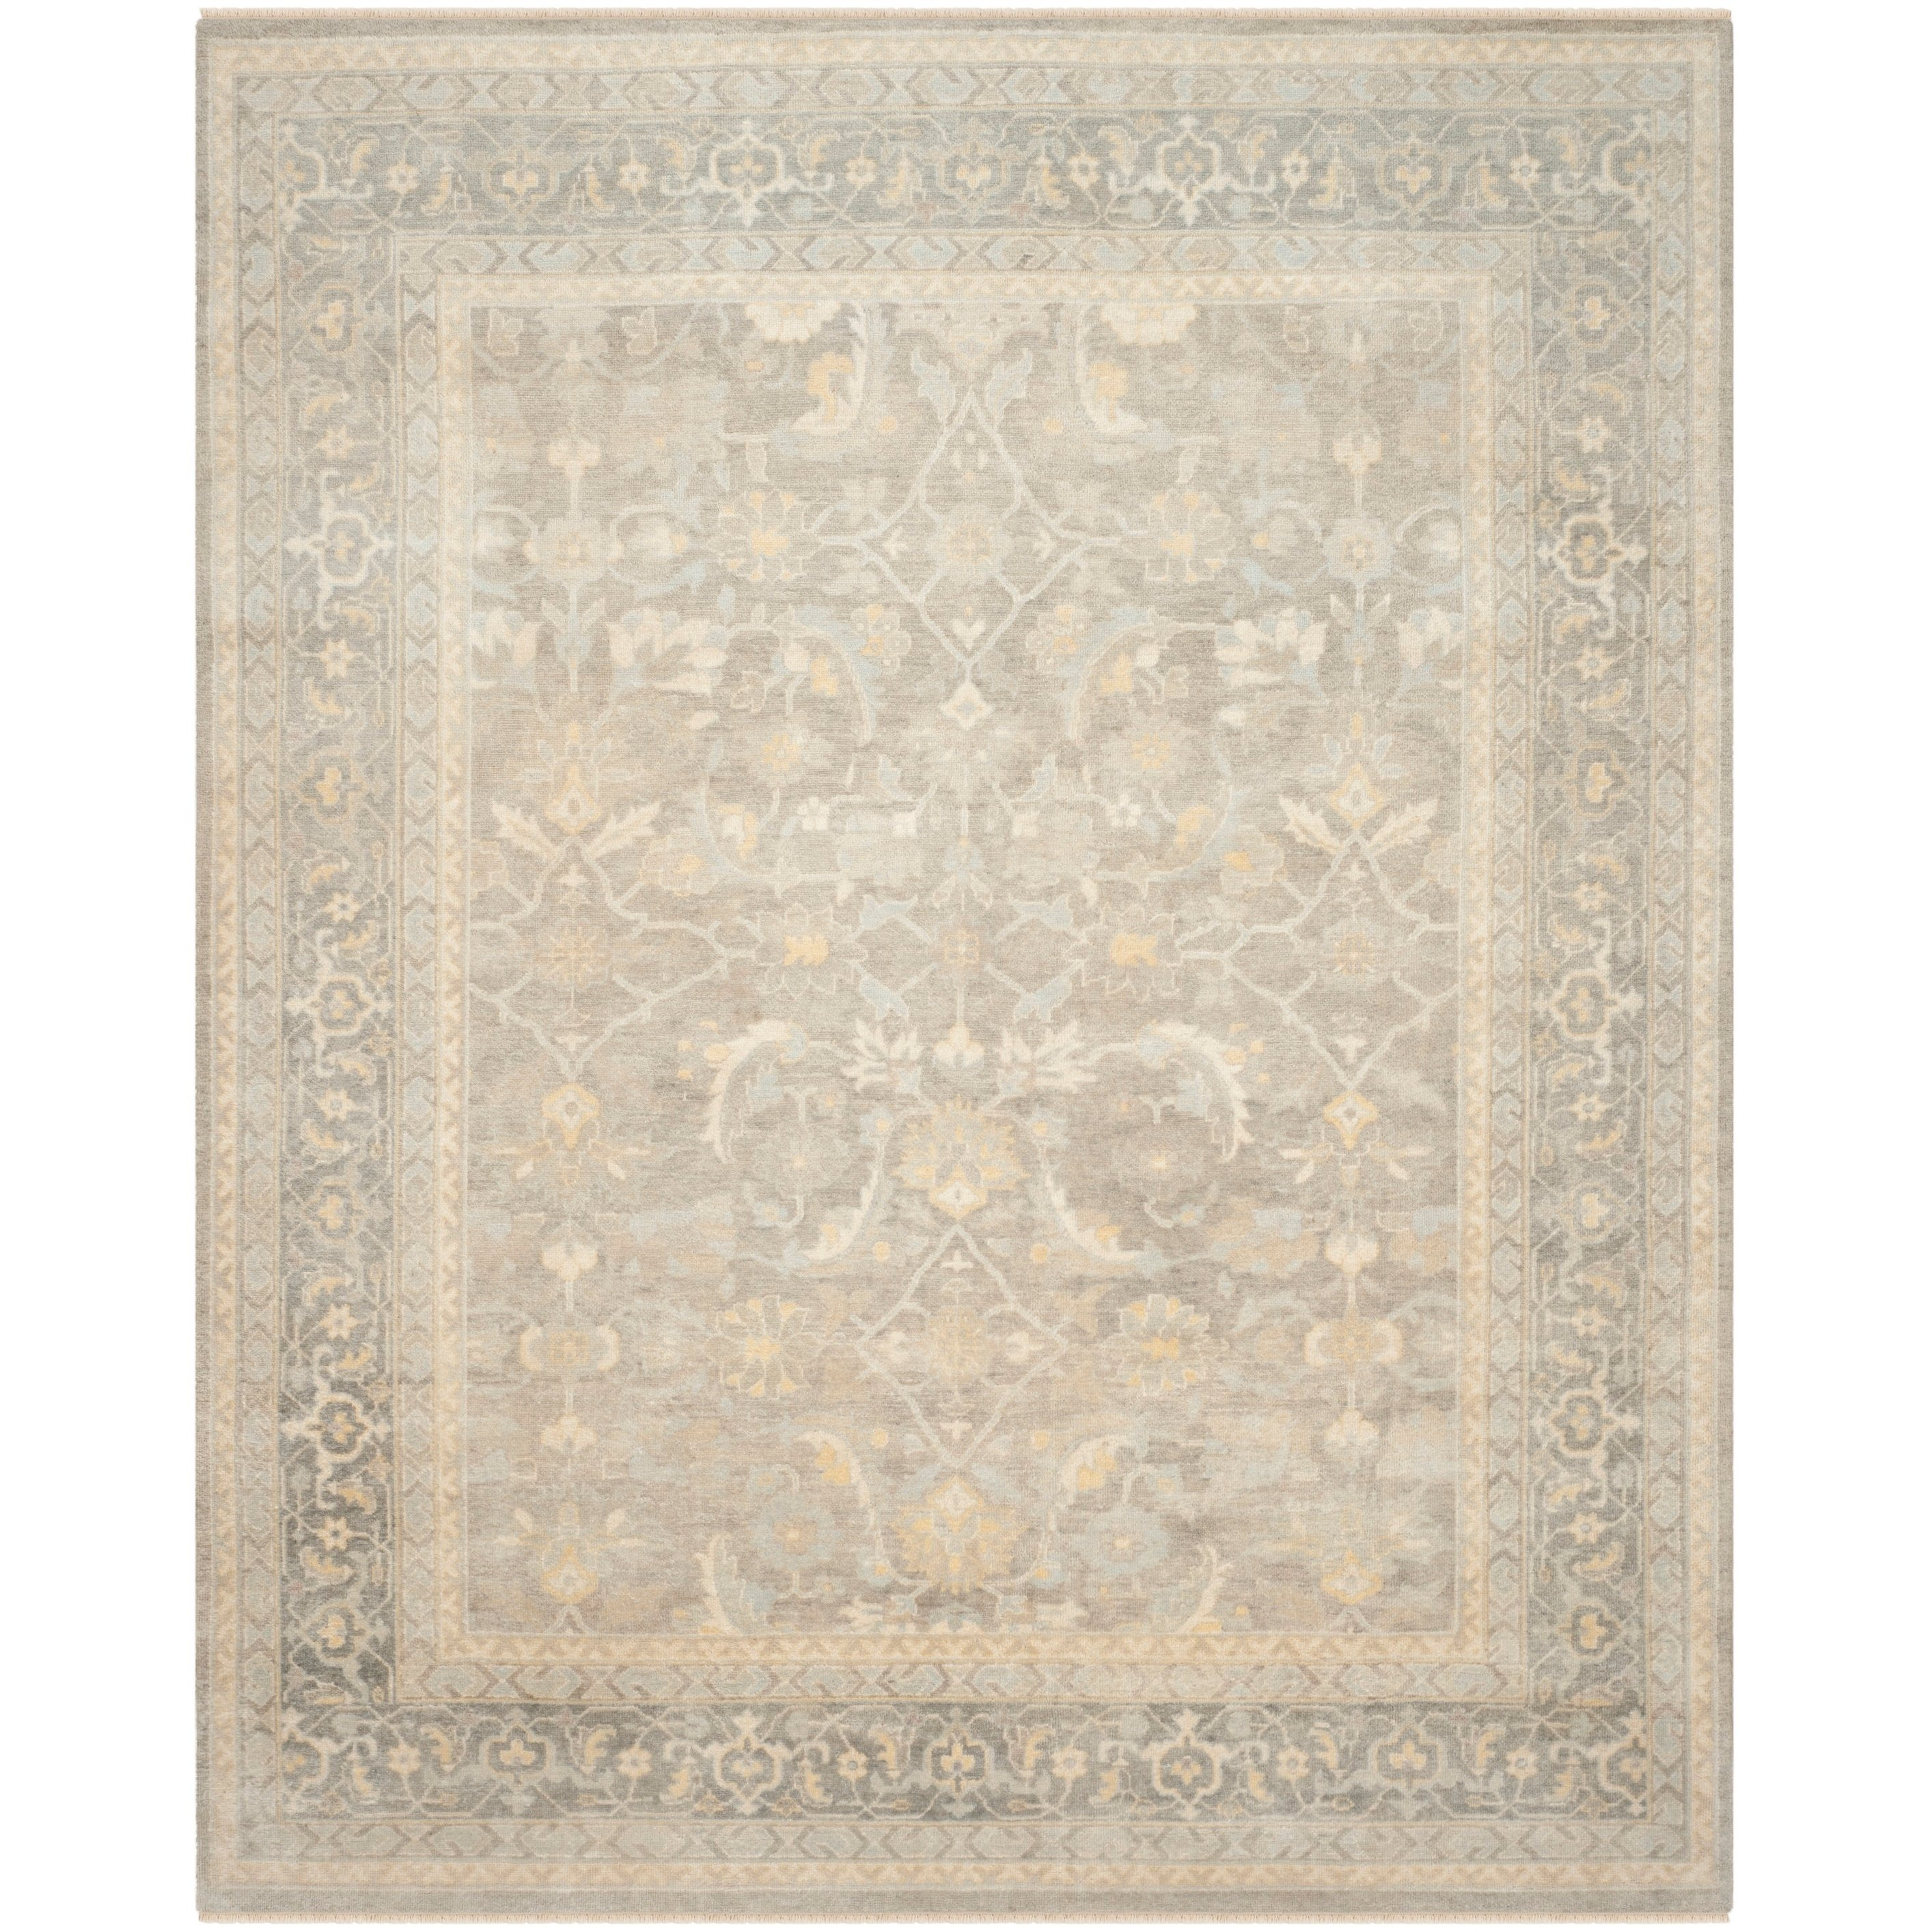 Safavieh Couture Handmade Sultanabad Traditional Grey Wool Rug